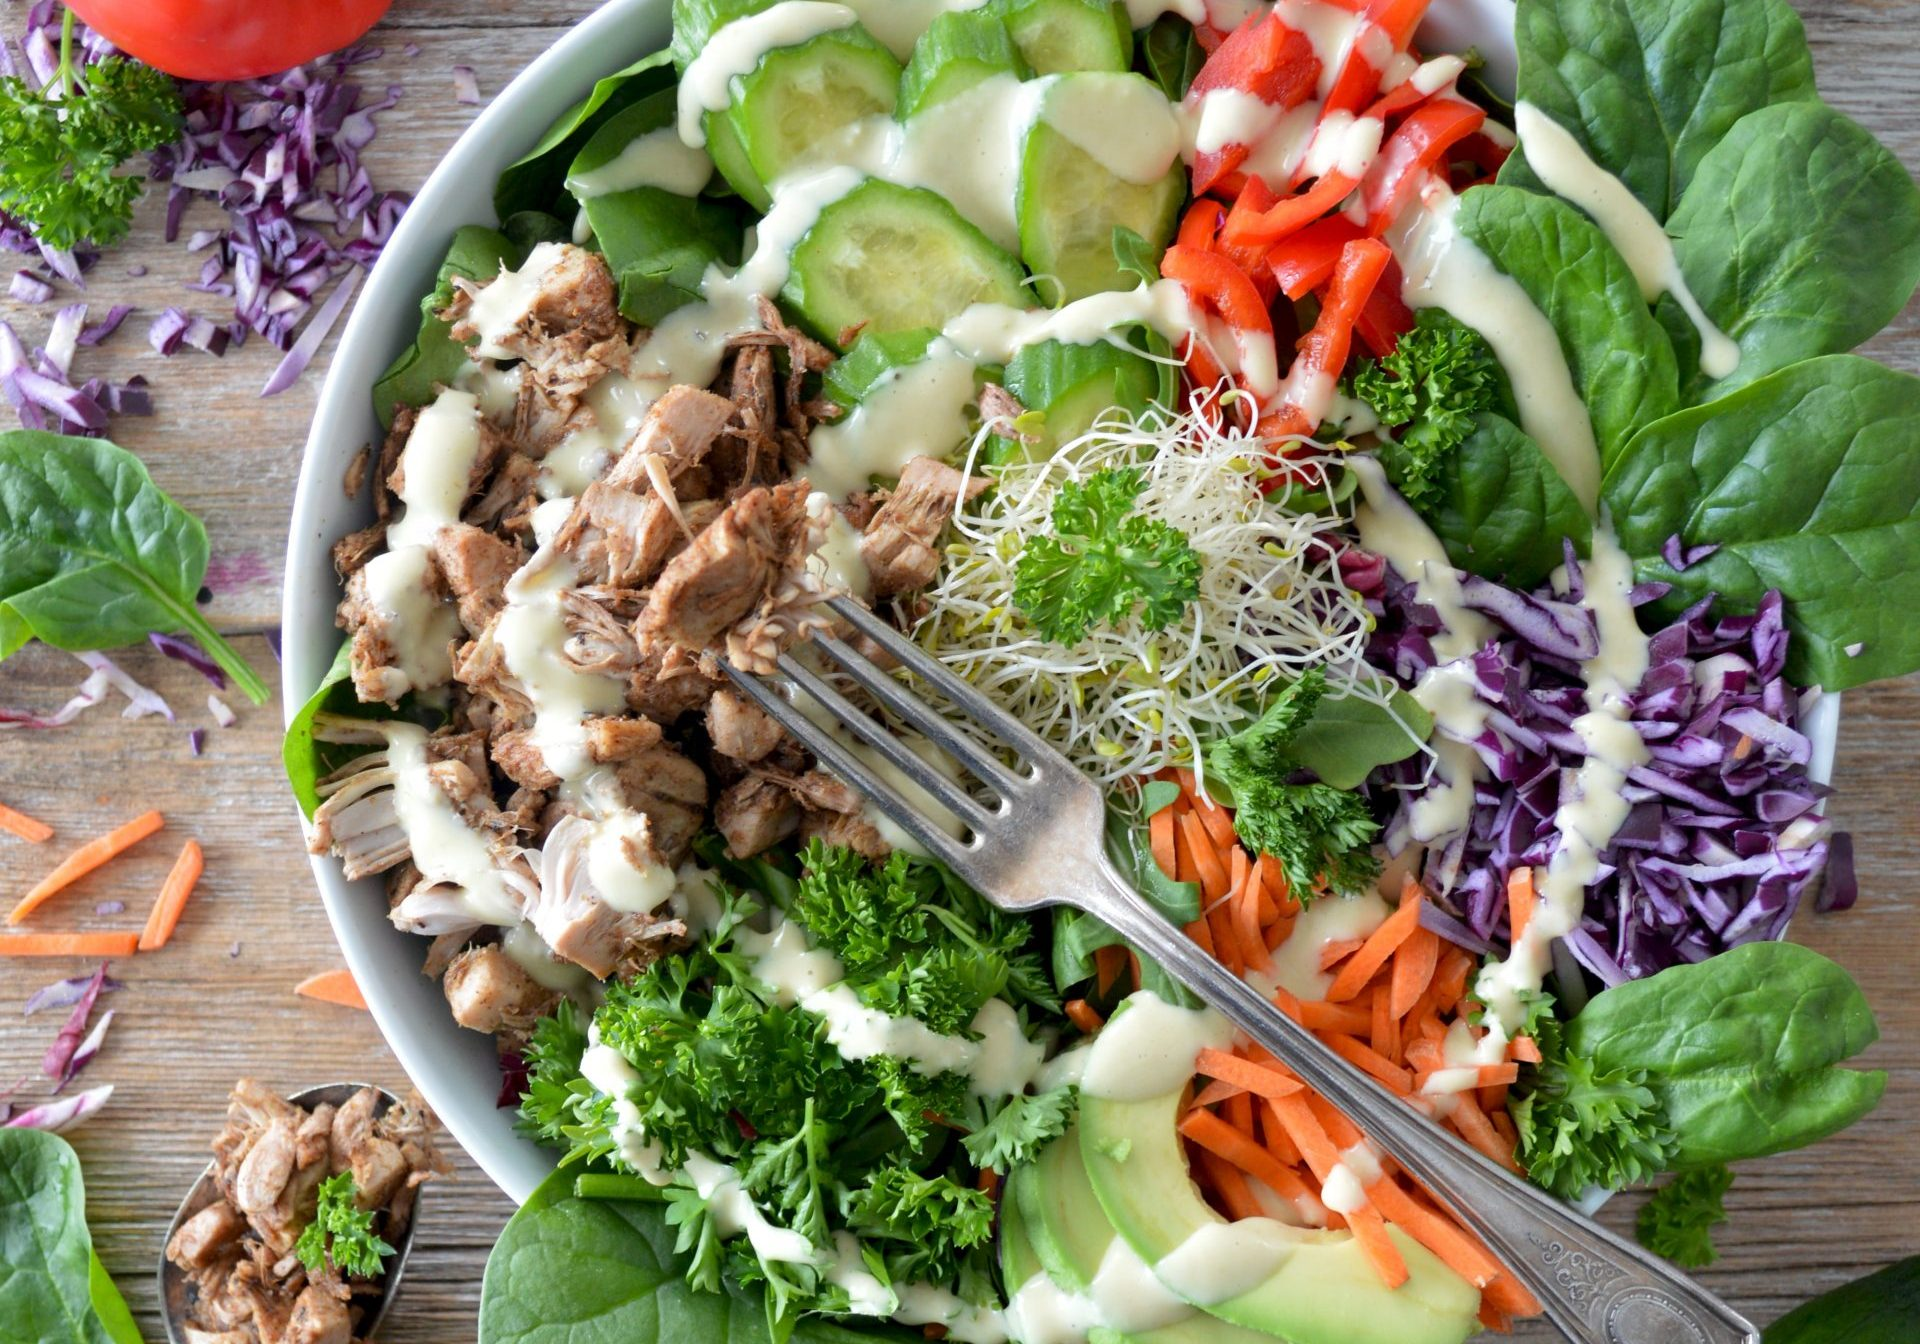 Huge salad bowl with vegetables and meat with dressing on it